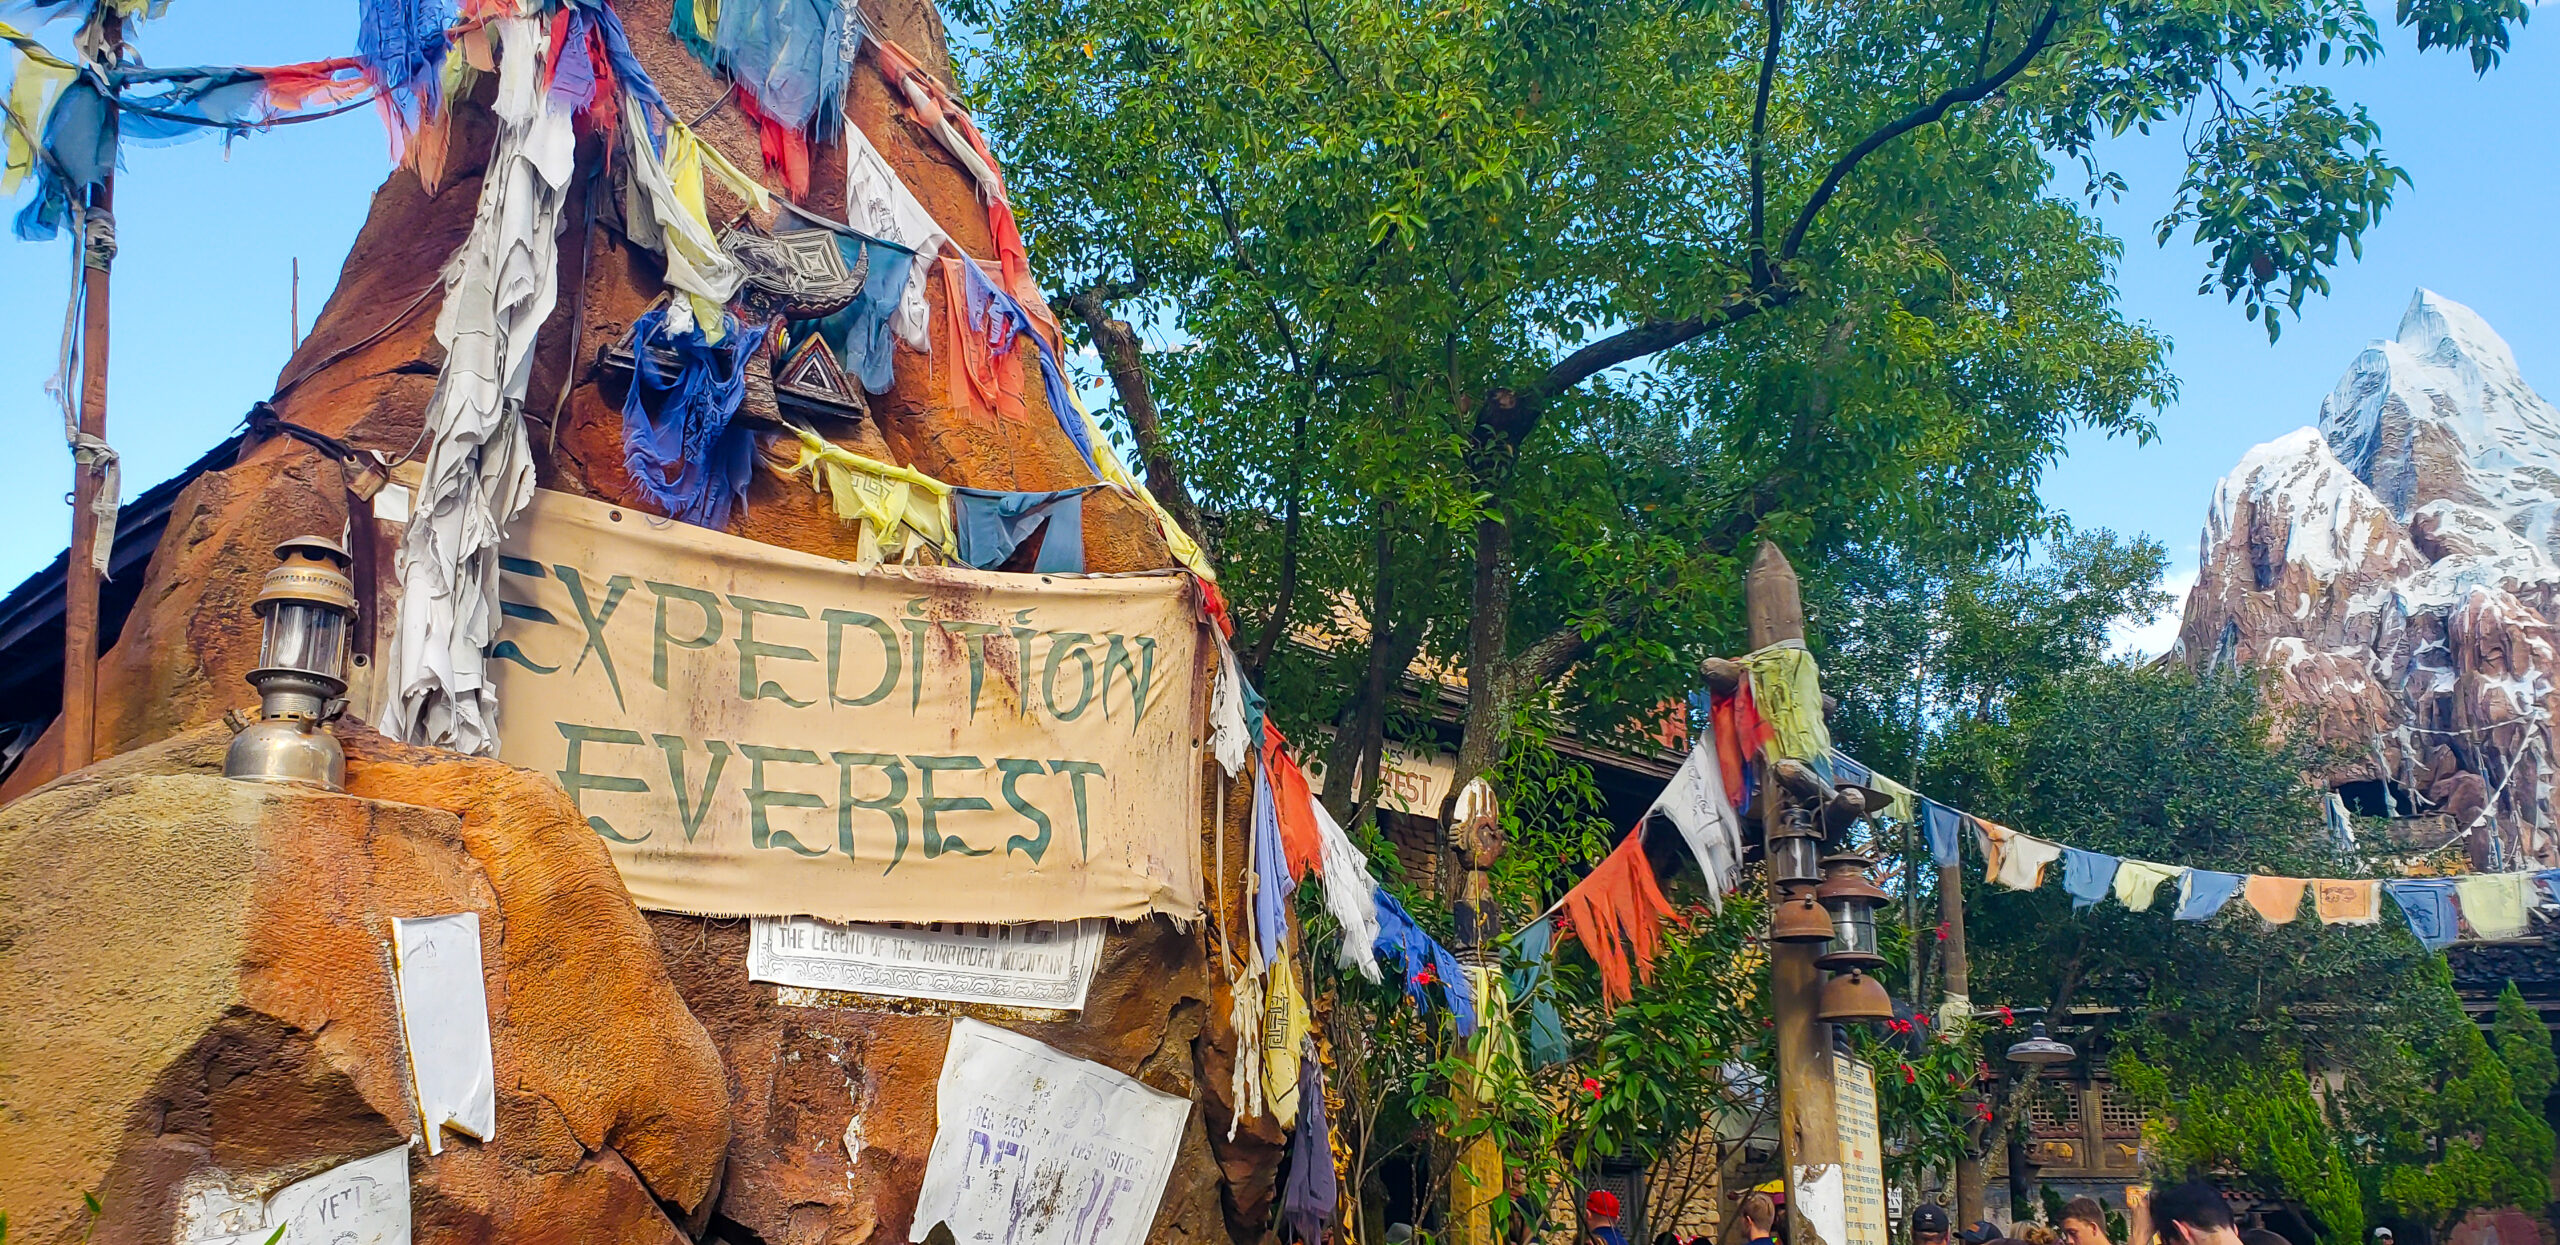 Expedition Everest ride sign